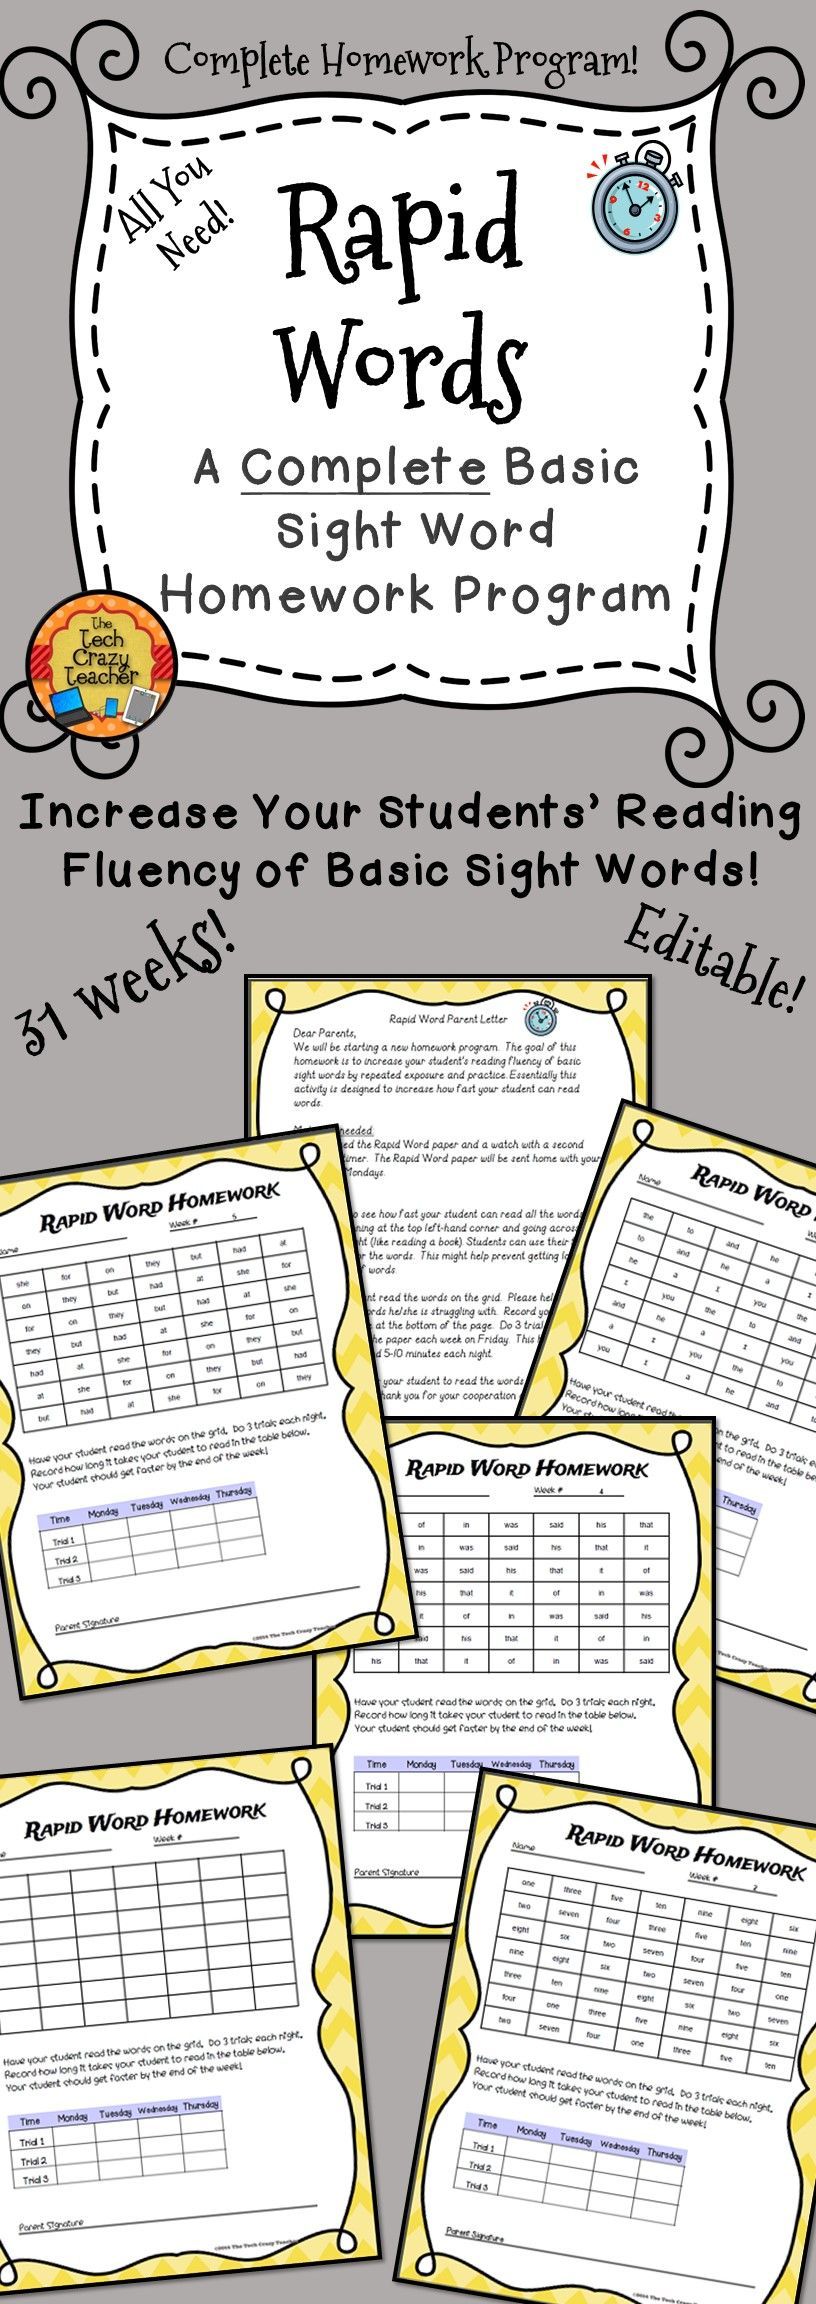 Worksheet Sight Word Program 78 images about first grade sight words on pinterest dolch word worksheets and learning words